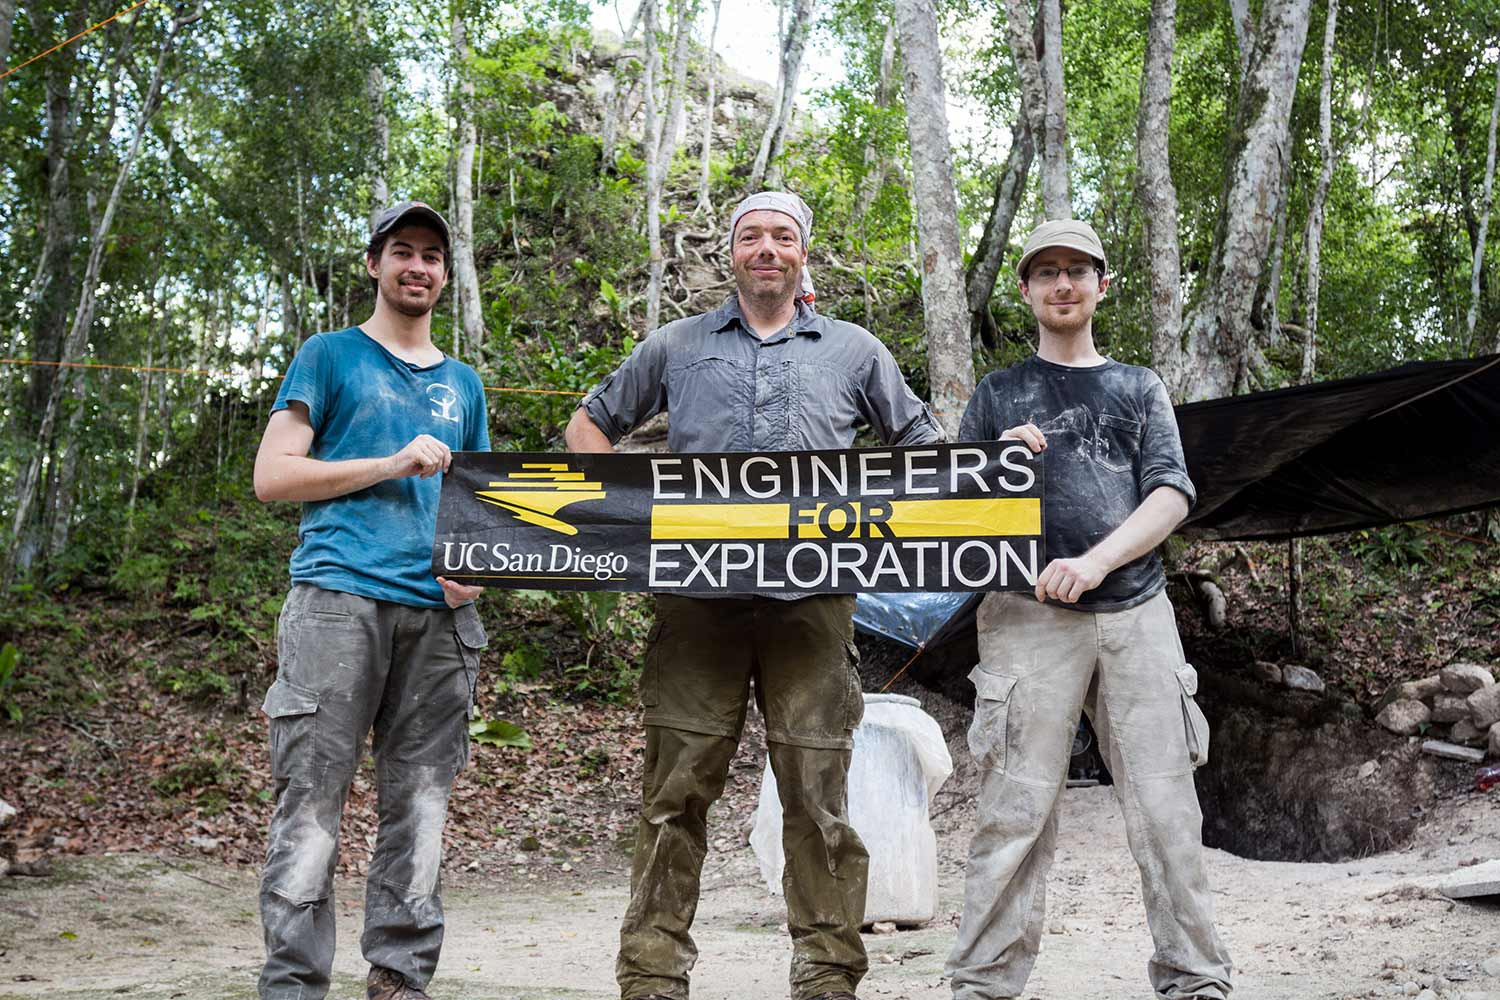 Engineers for Exploration holding a banner